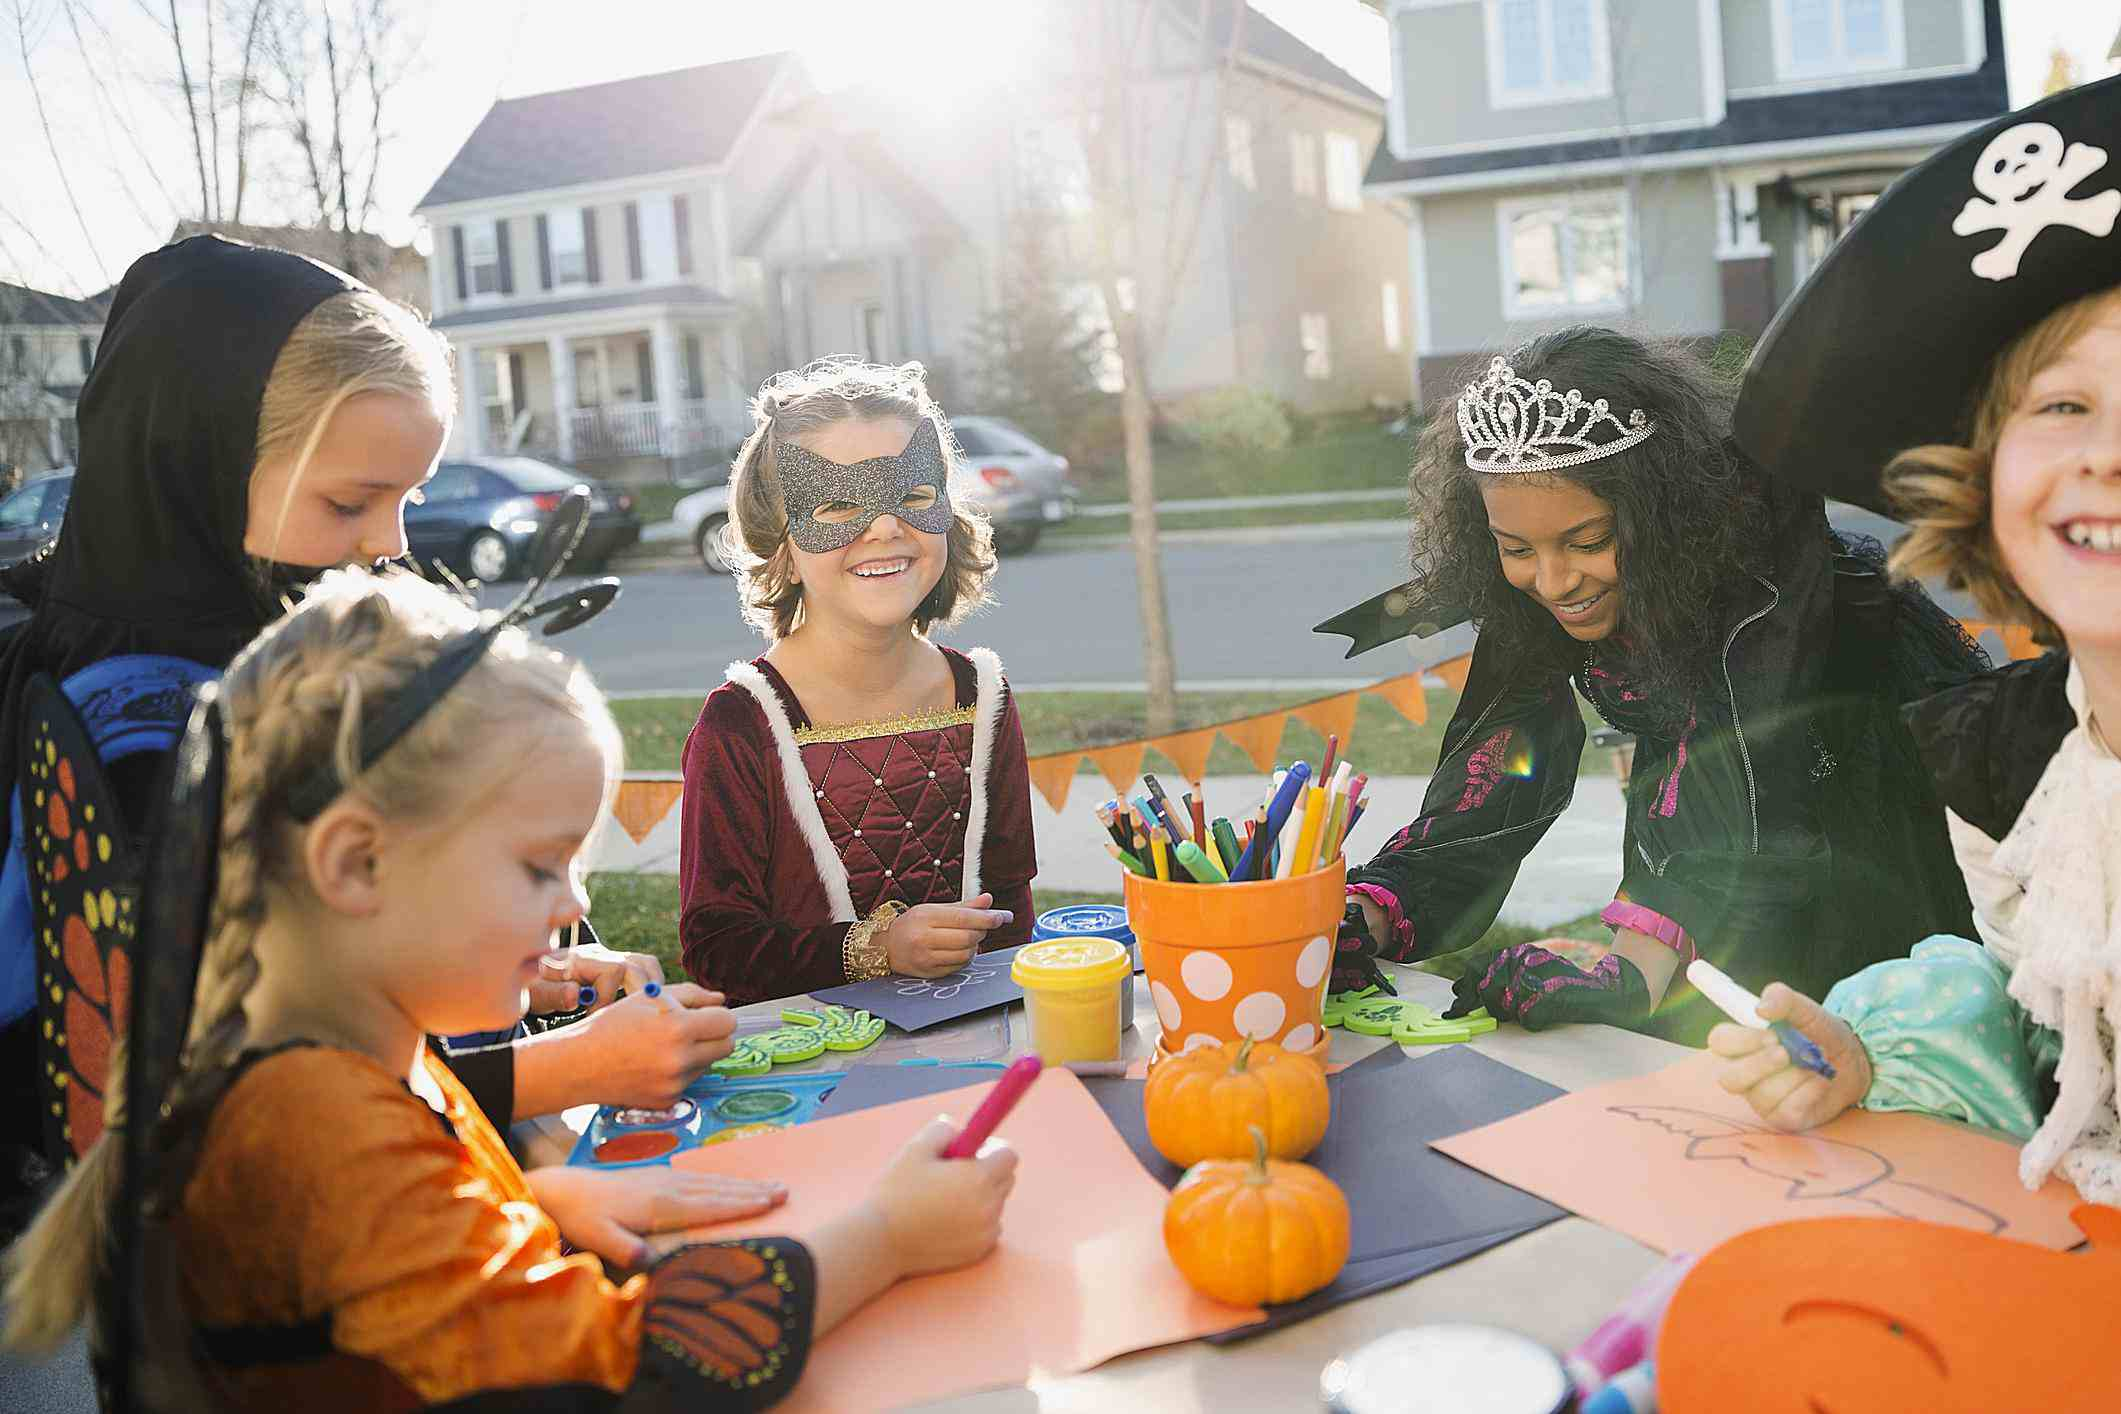 Kids doing Halloween crafts in costumes